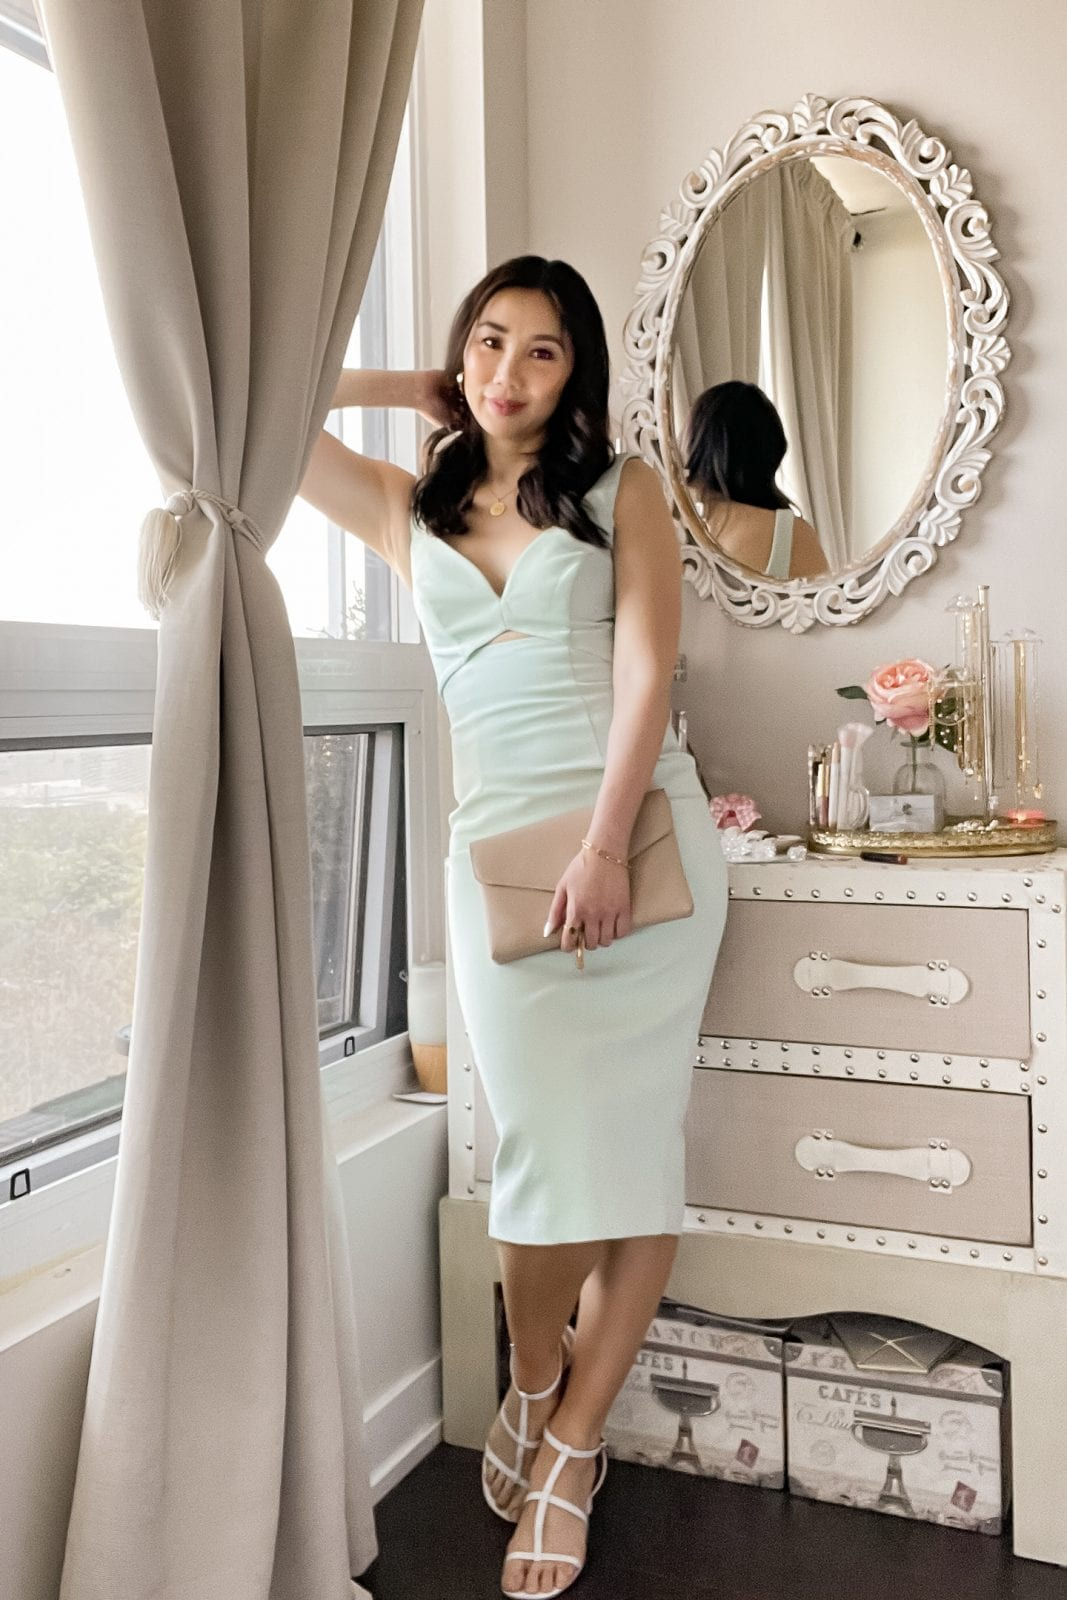 Dressed to impressed in this chic pastel mint mini dress with cut out details. This is the perfect special occasion dress that's elegant and oh so flattering in all the right places. Check out more outfit ideas on yesmissy.com